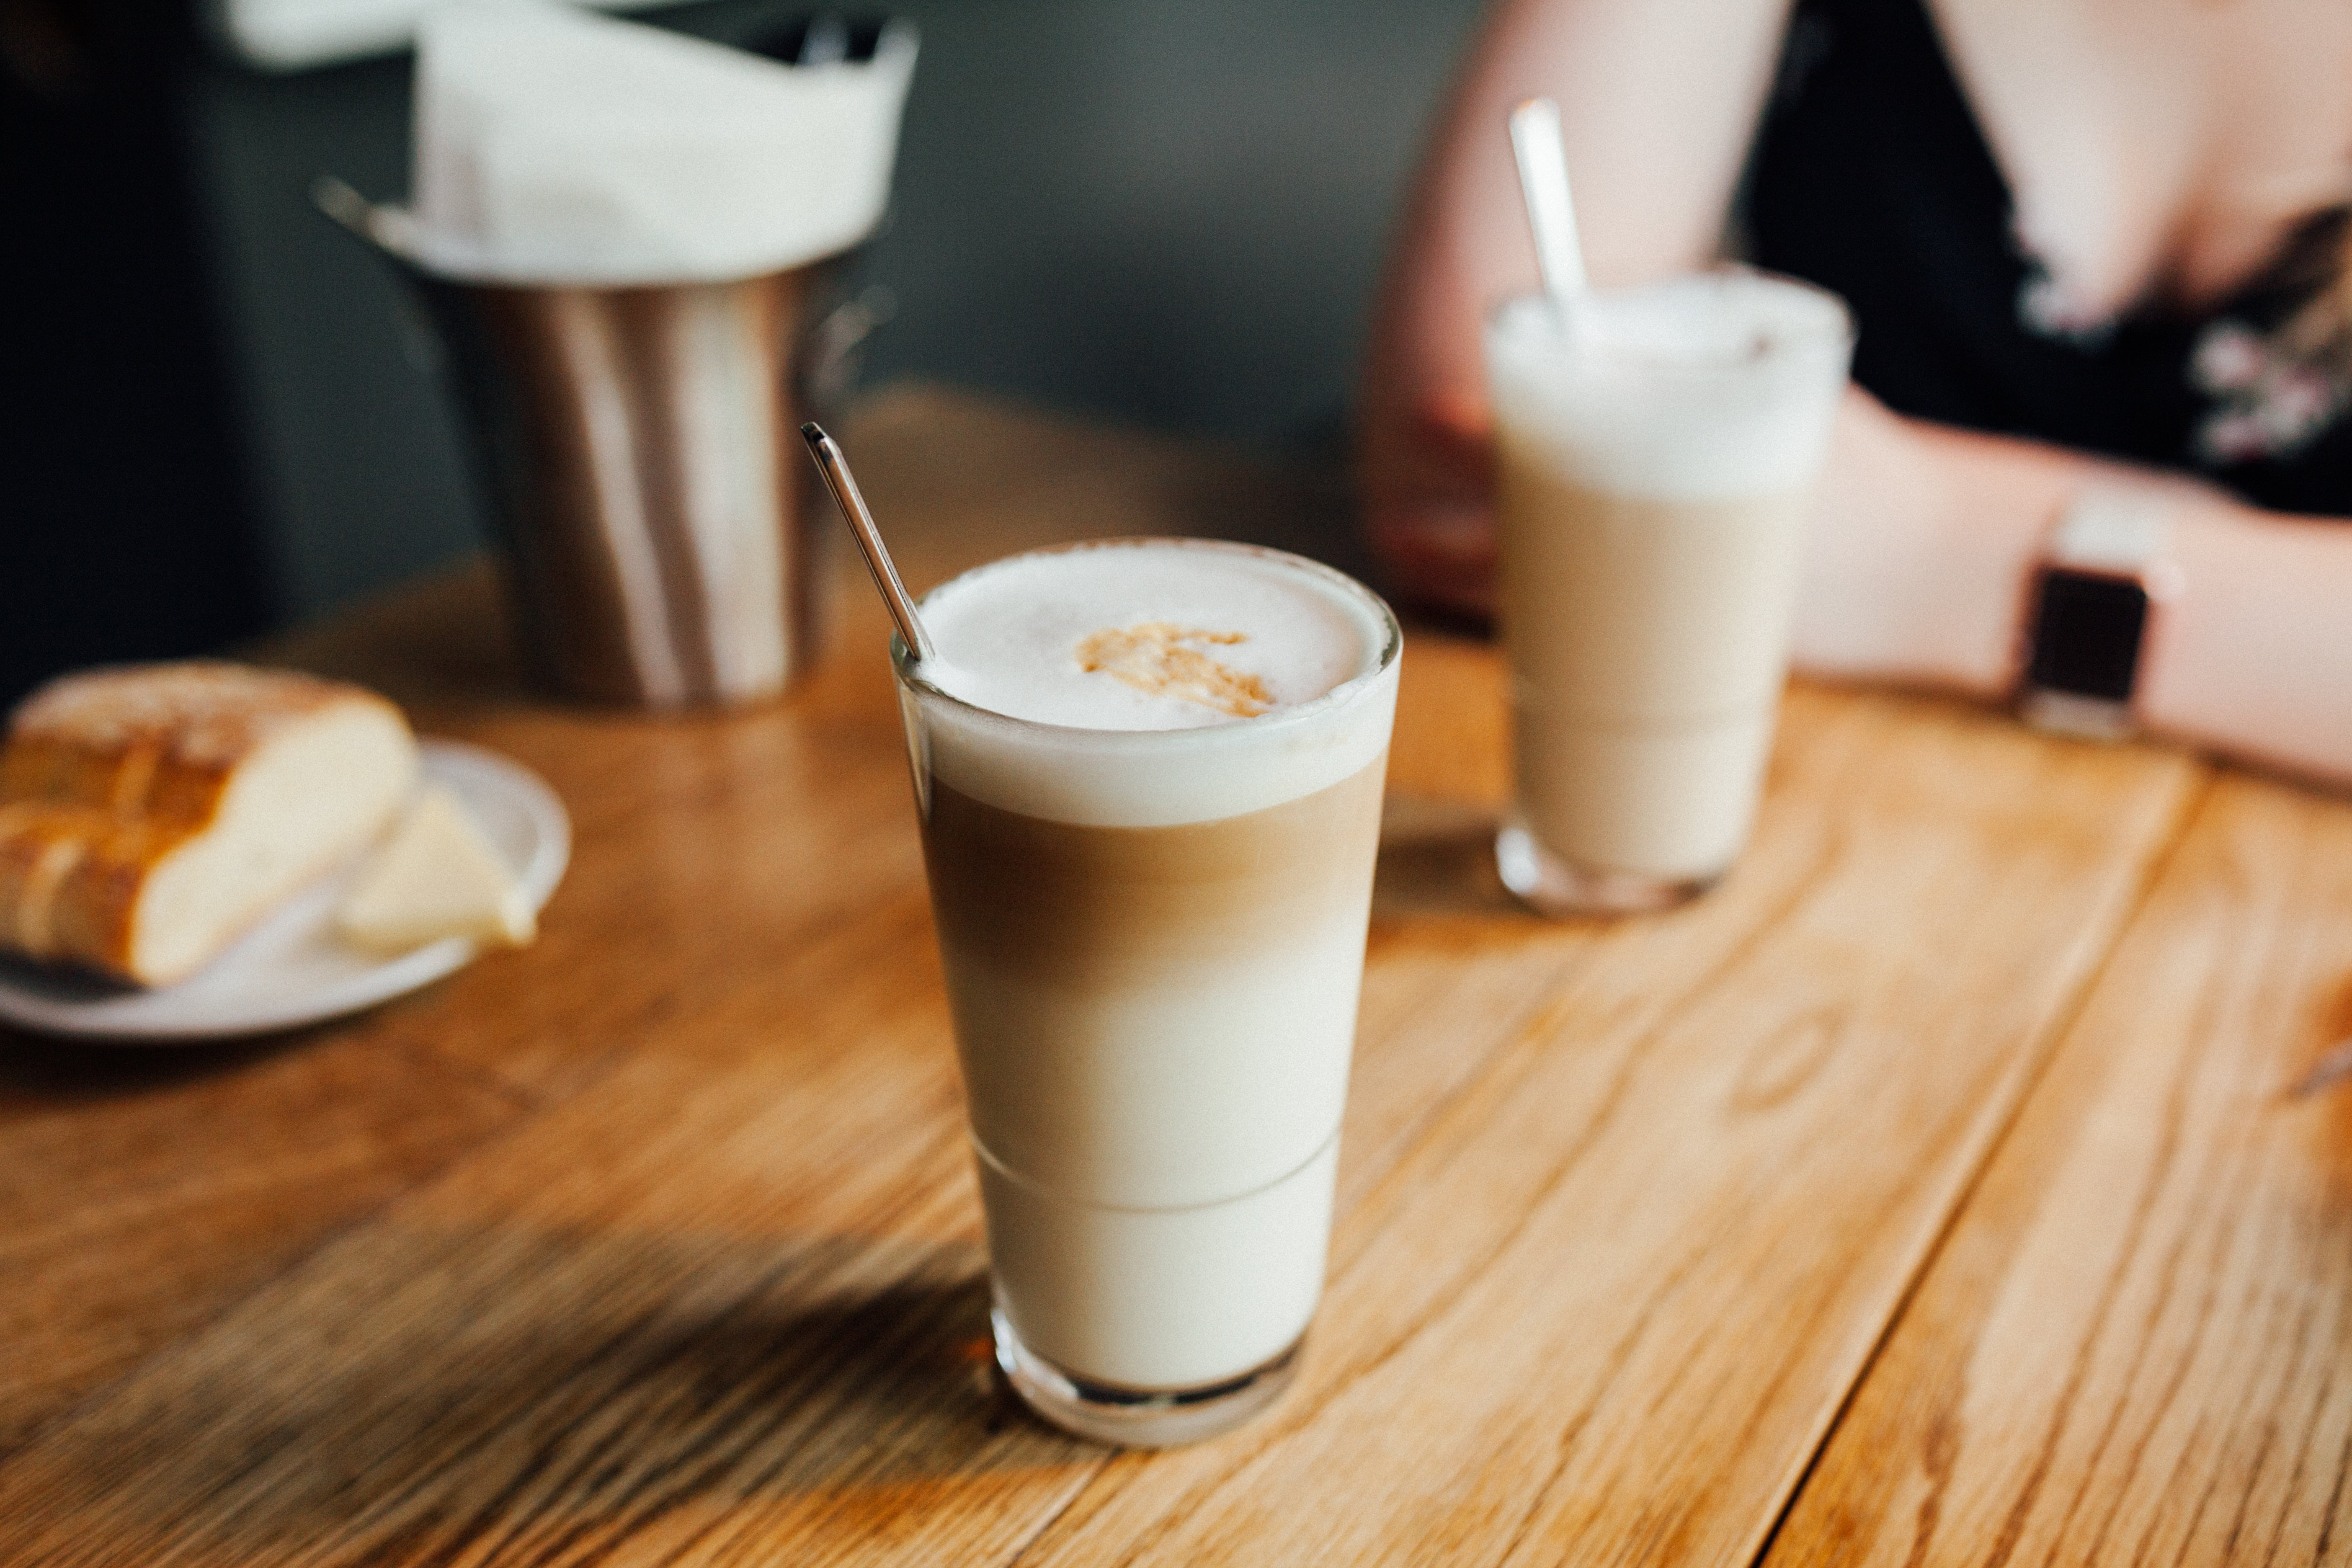 cafe lattes on a wooden table